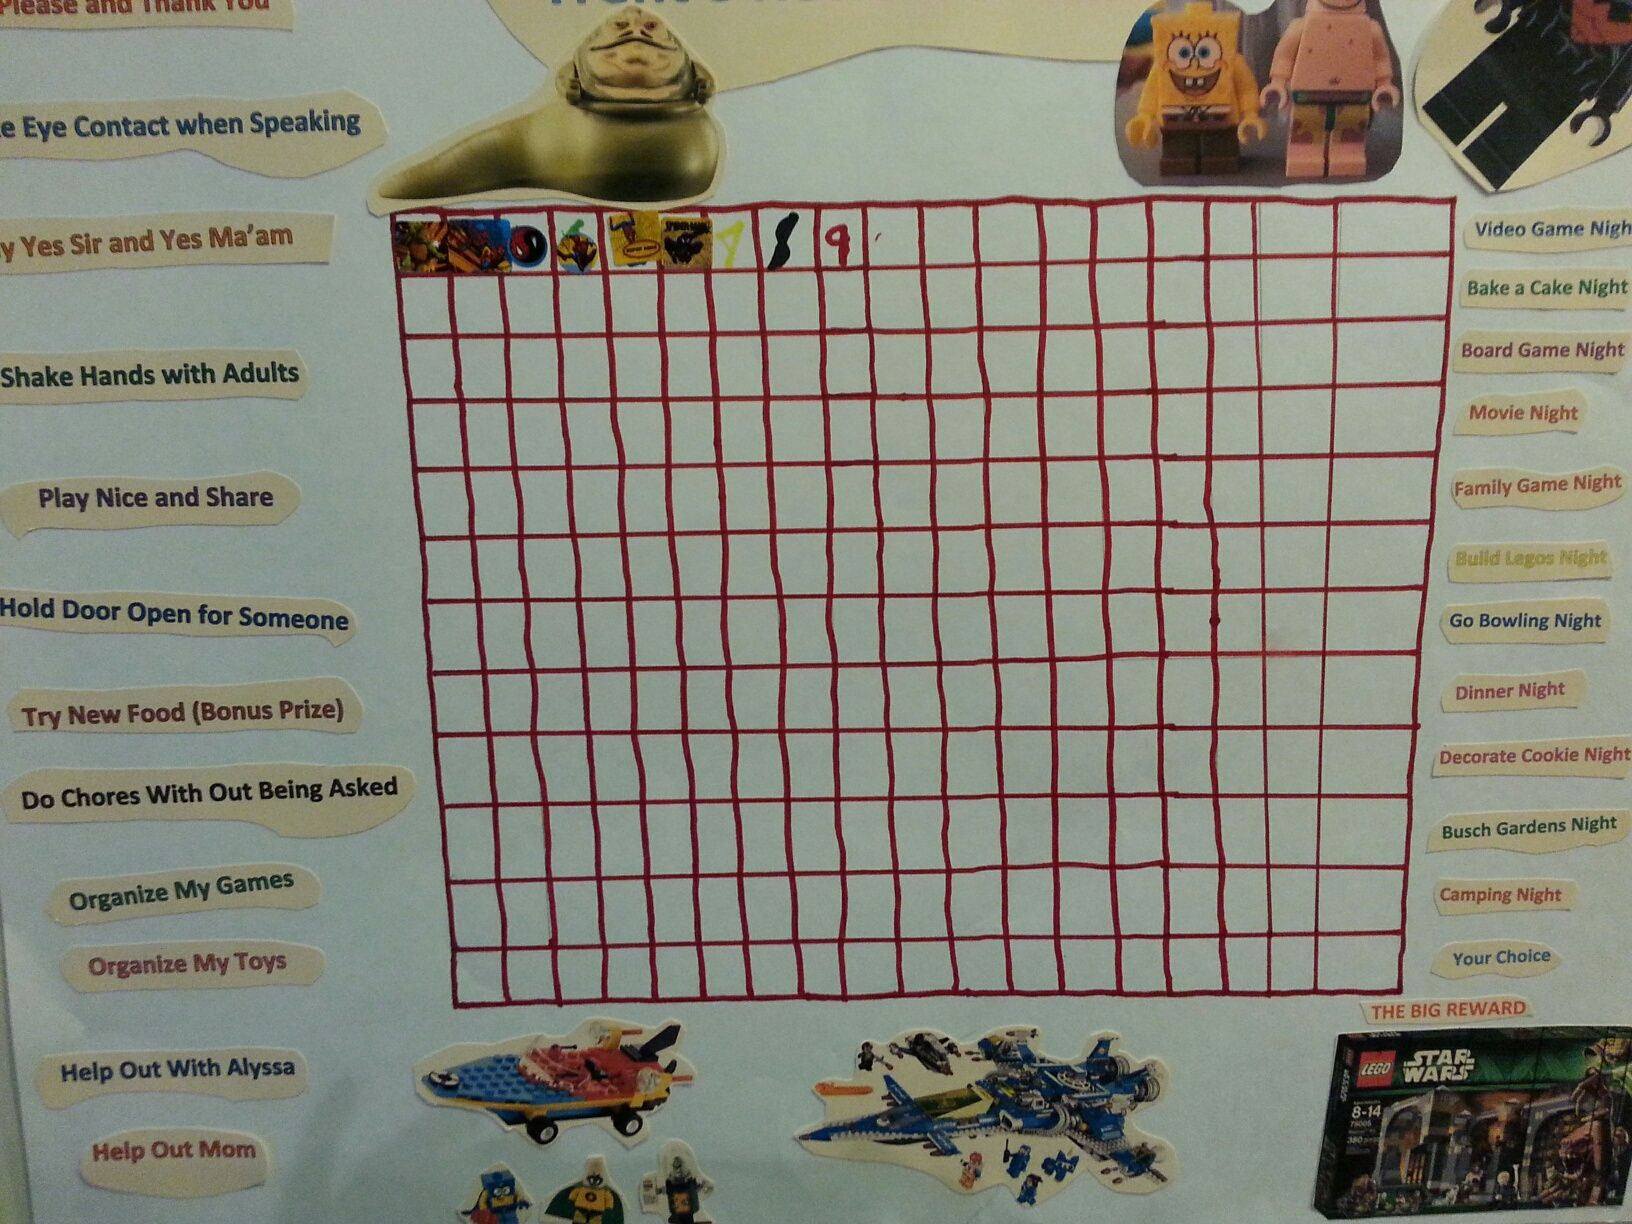 Reward chart that allows at the end of each row completed with stickers, there is a family time reward. He can receive stickers for doing any of the items on the left hand side. At the very end he is rewarded with a Lego set that he glued at the end. He joined in in helping make this which was a lot of fun. This has really been something fun for us to look forward to.